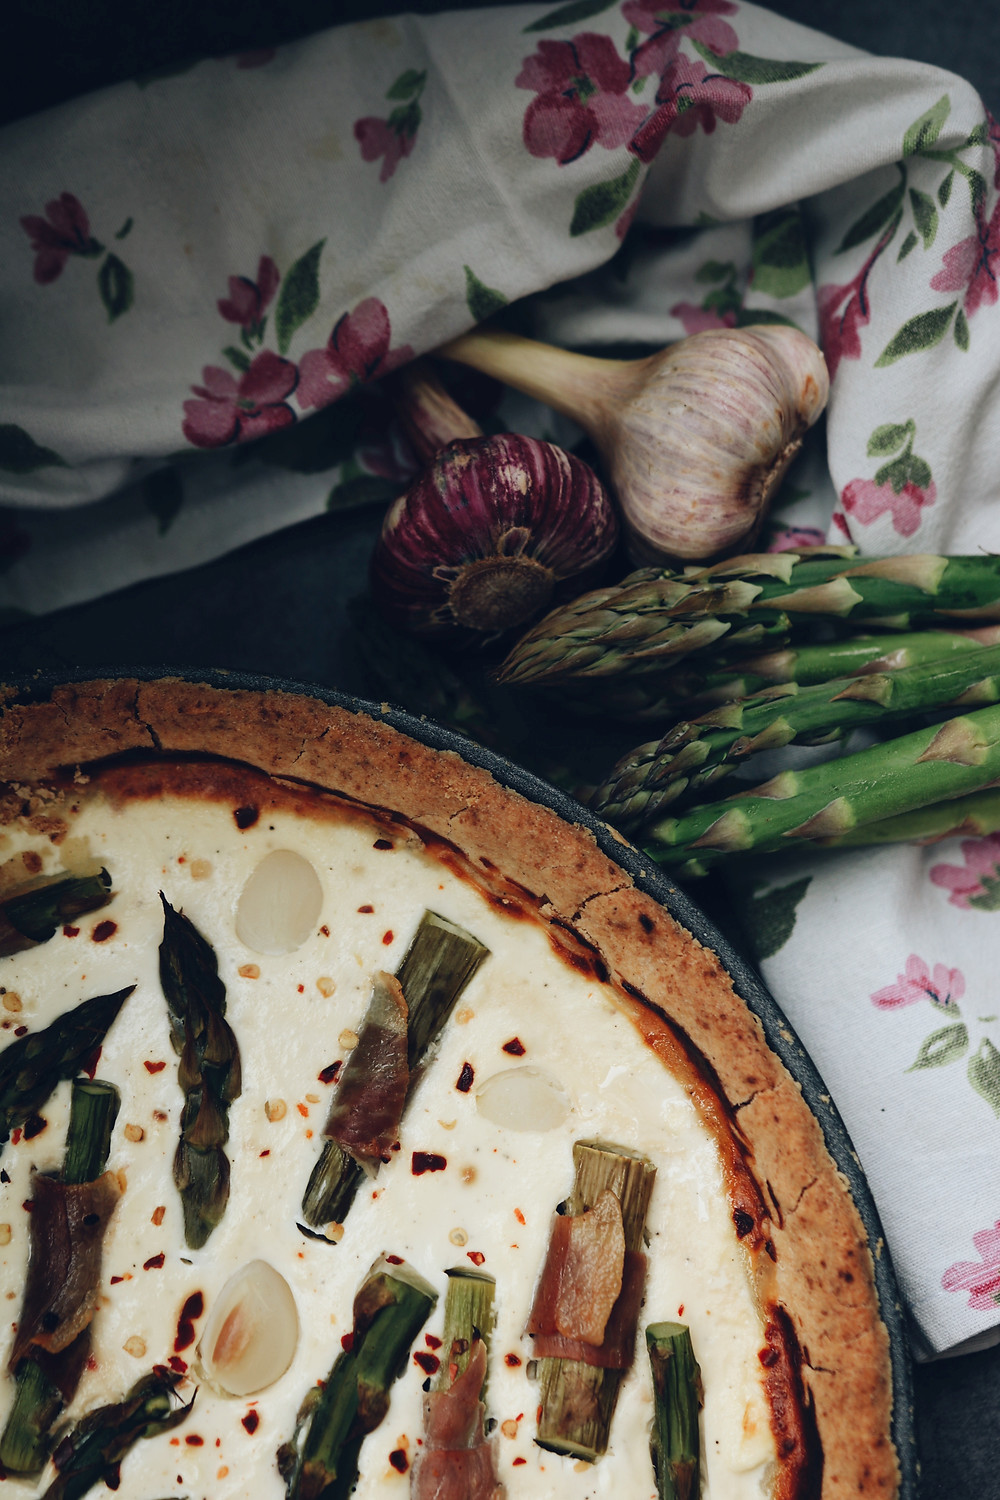 Gluten free asparagus tart, with goat cheese and prosciutto seen from above. In the upper right corner some garlic and asparagus stalks are seen, as well as a floral kitchen rag.